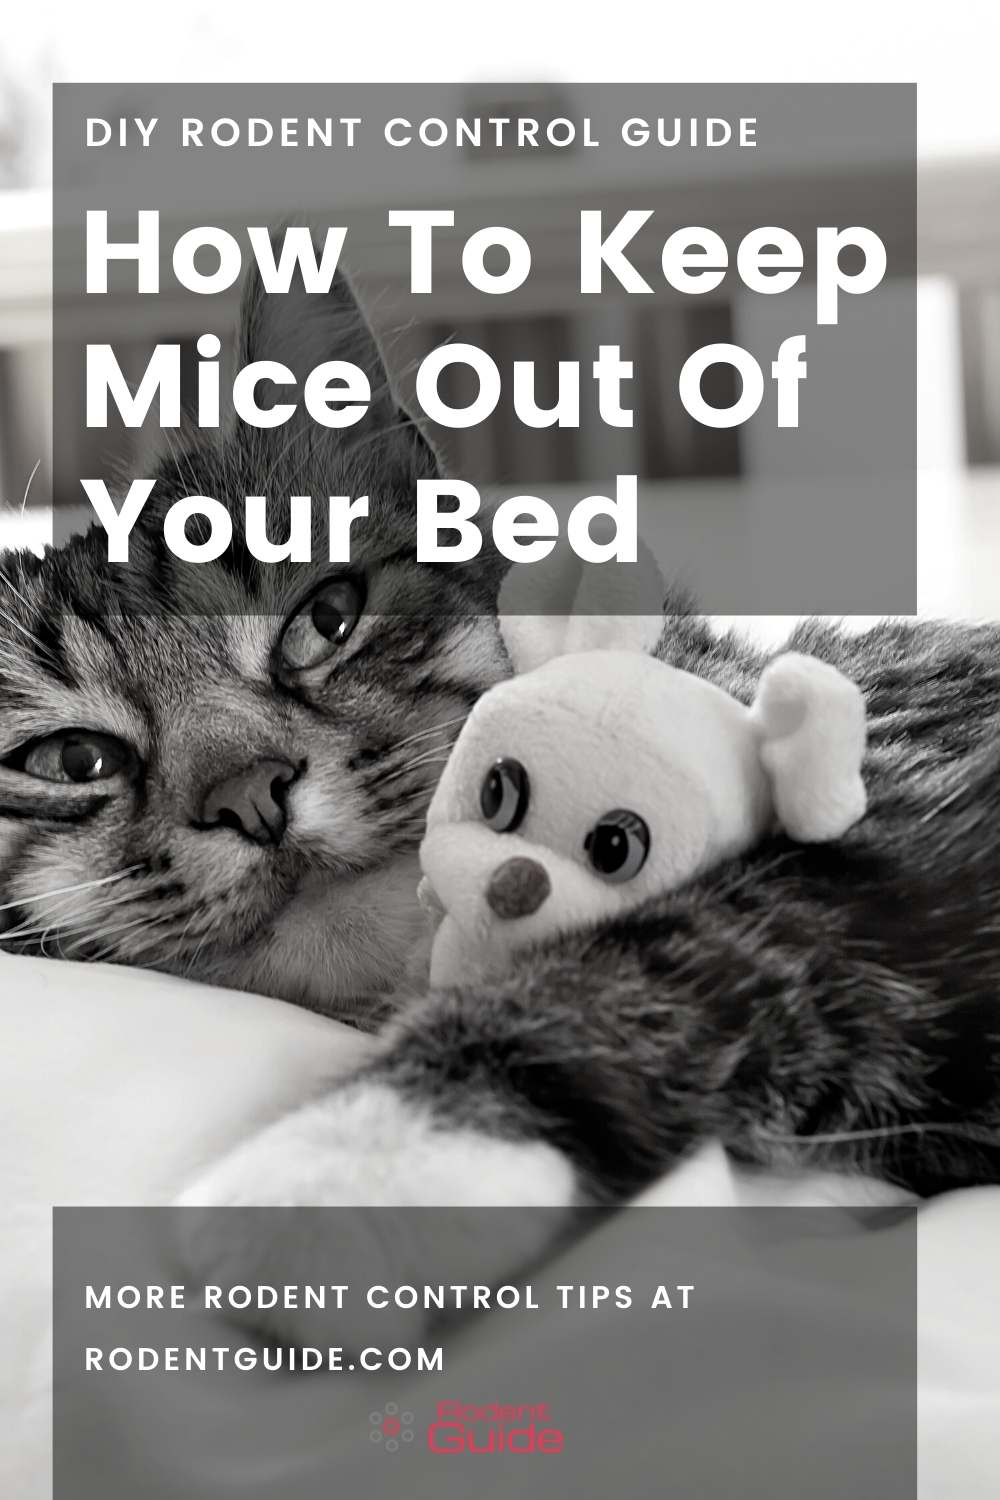 How To Keep Mice Out Of Your Bed (2)